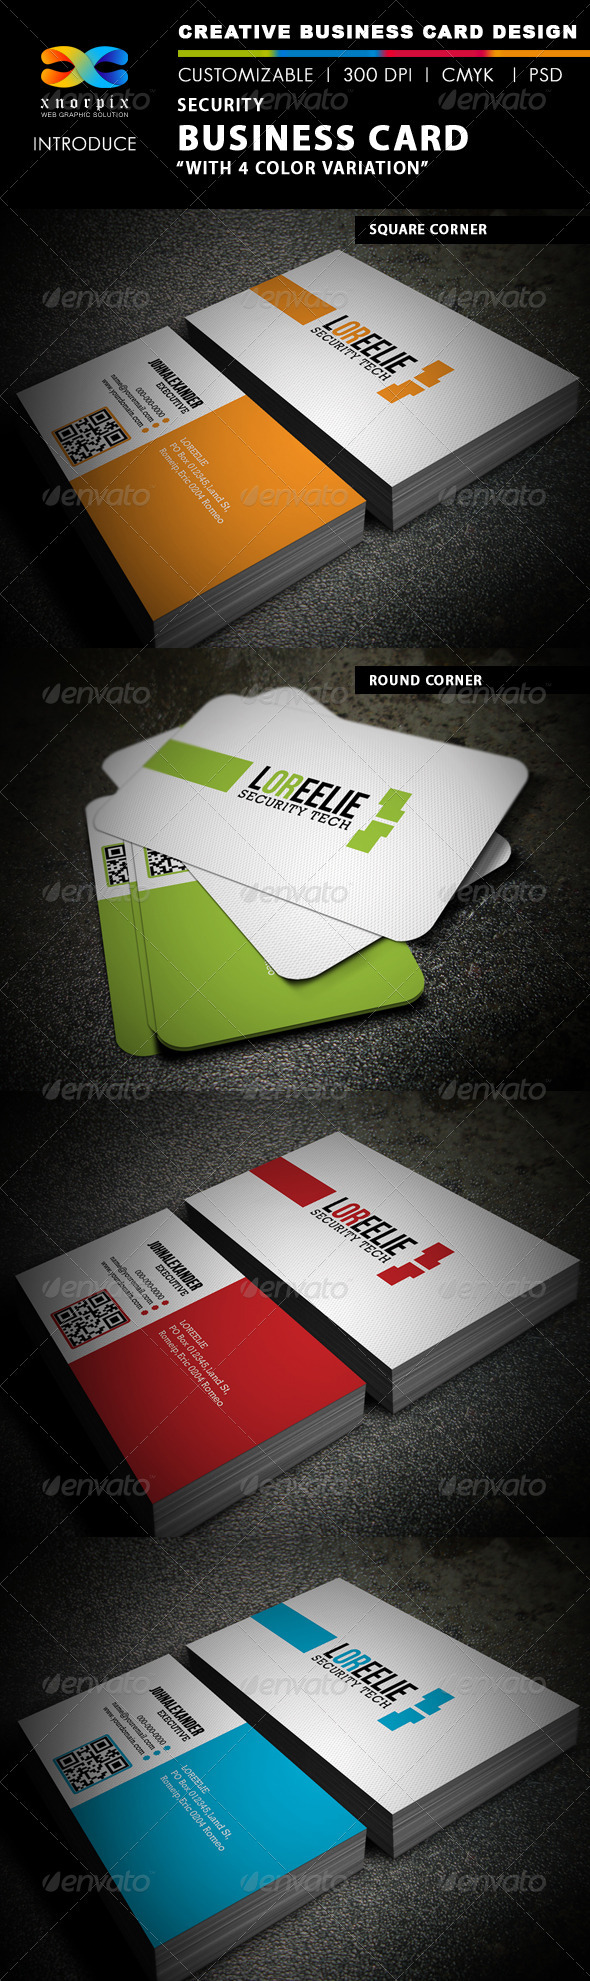 Security Business Card - Corporate Business Cards